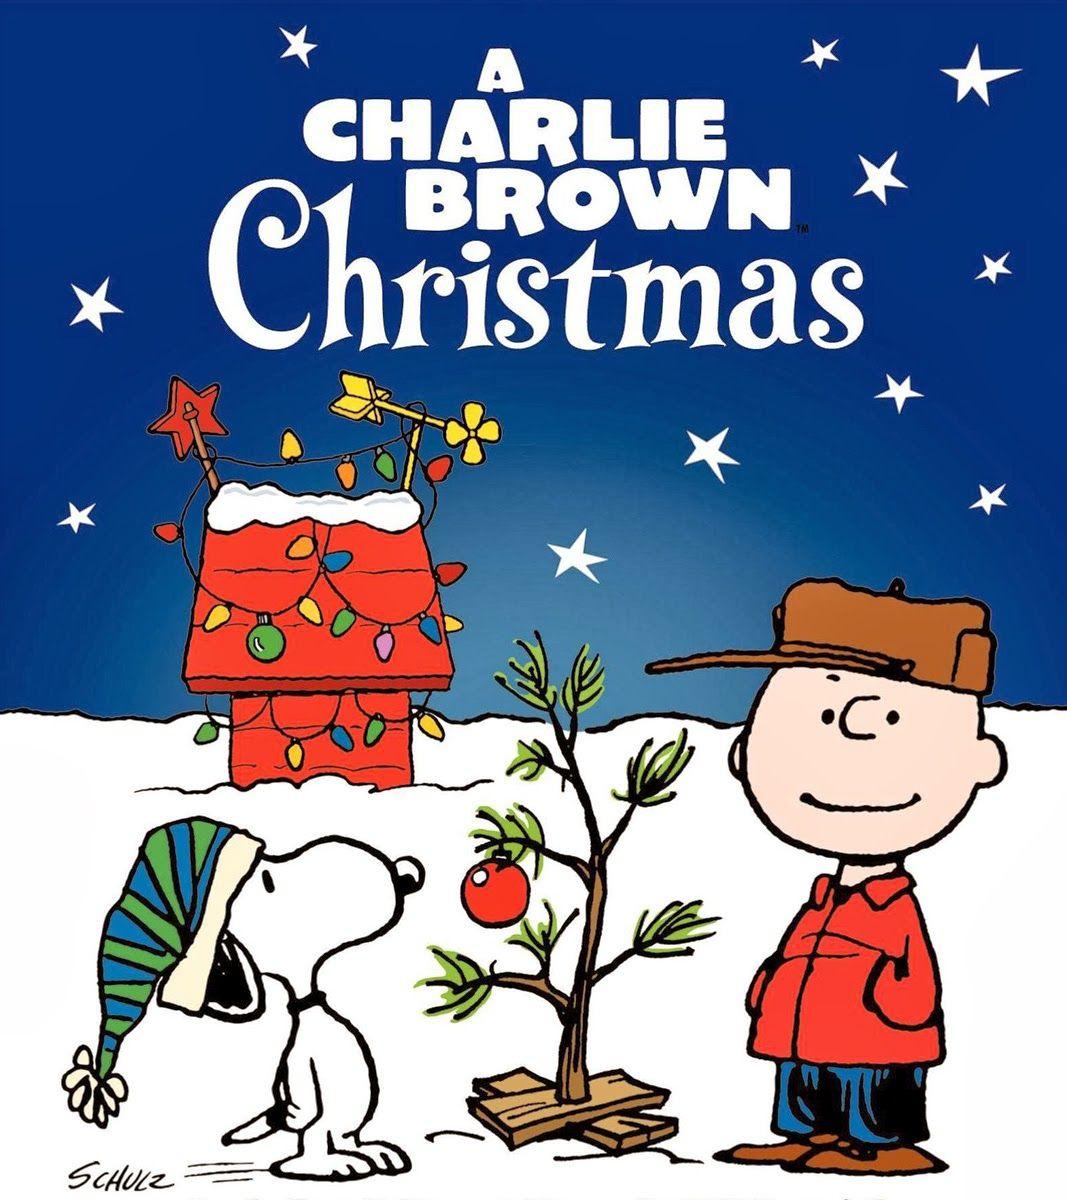 Best animated movies on Christmas | Christmas Decor | Pinterest ...